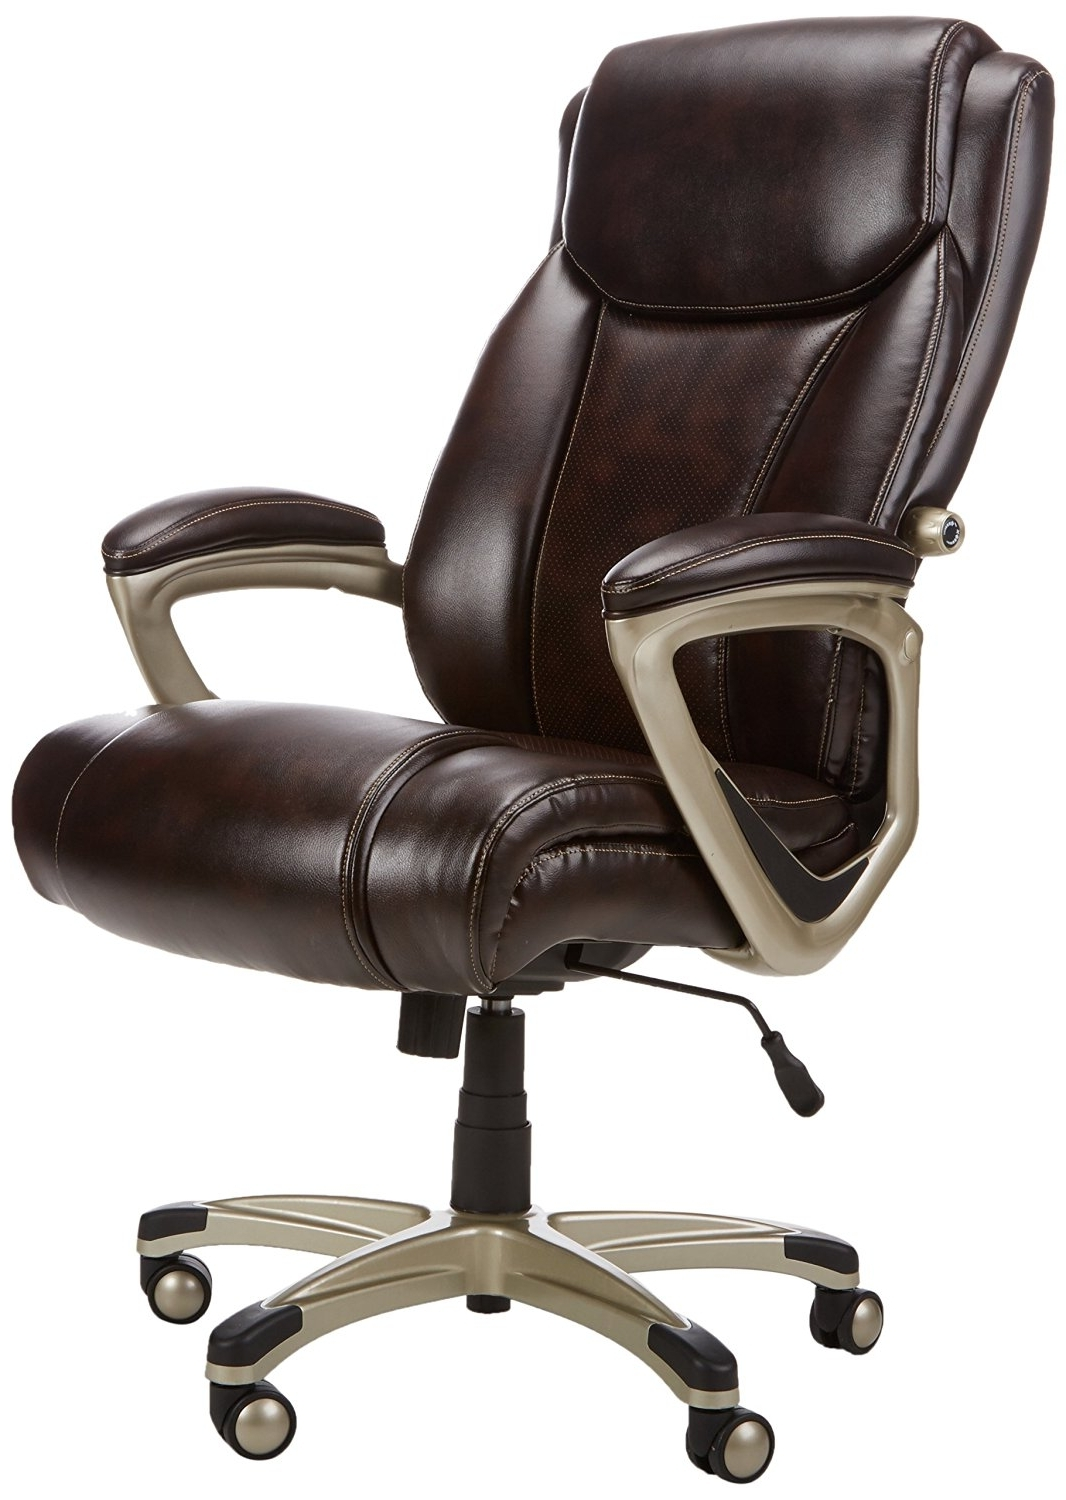 Big And Tall Executive Office Chairs Within 2019 10 Big & Tall Office Chairs For Extra Large Comfort (View 16 of 20)